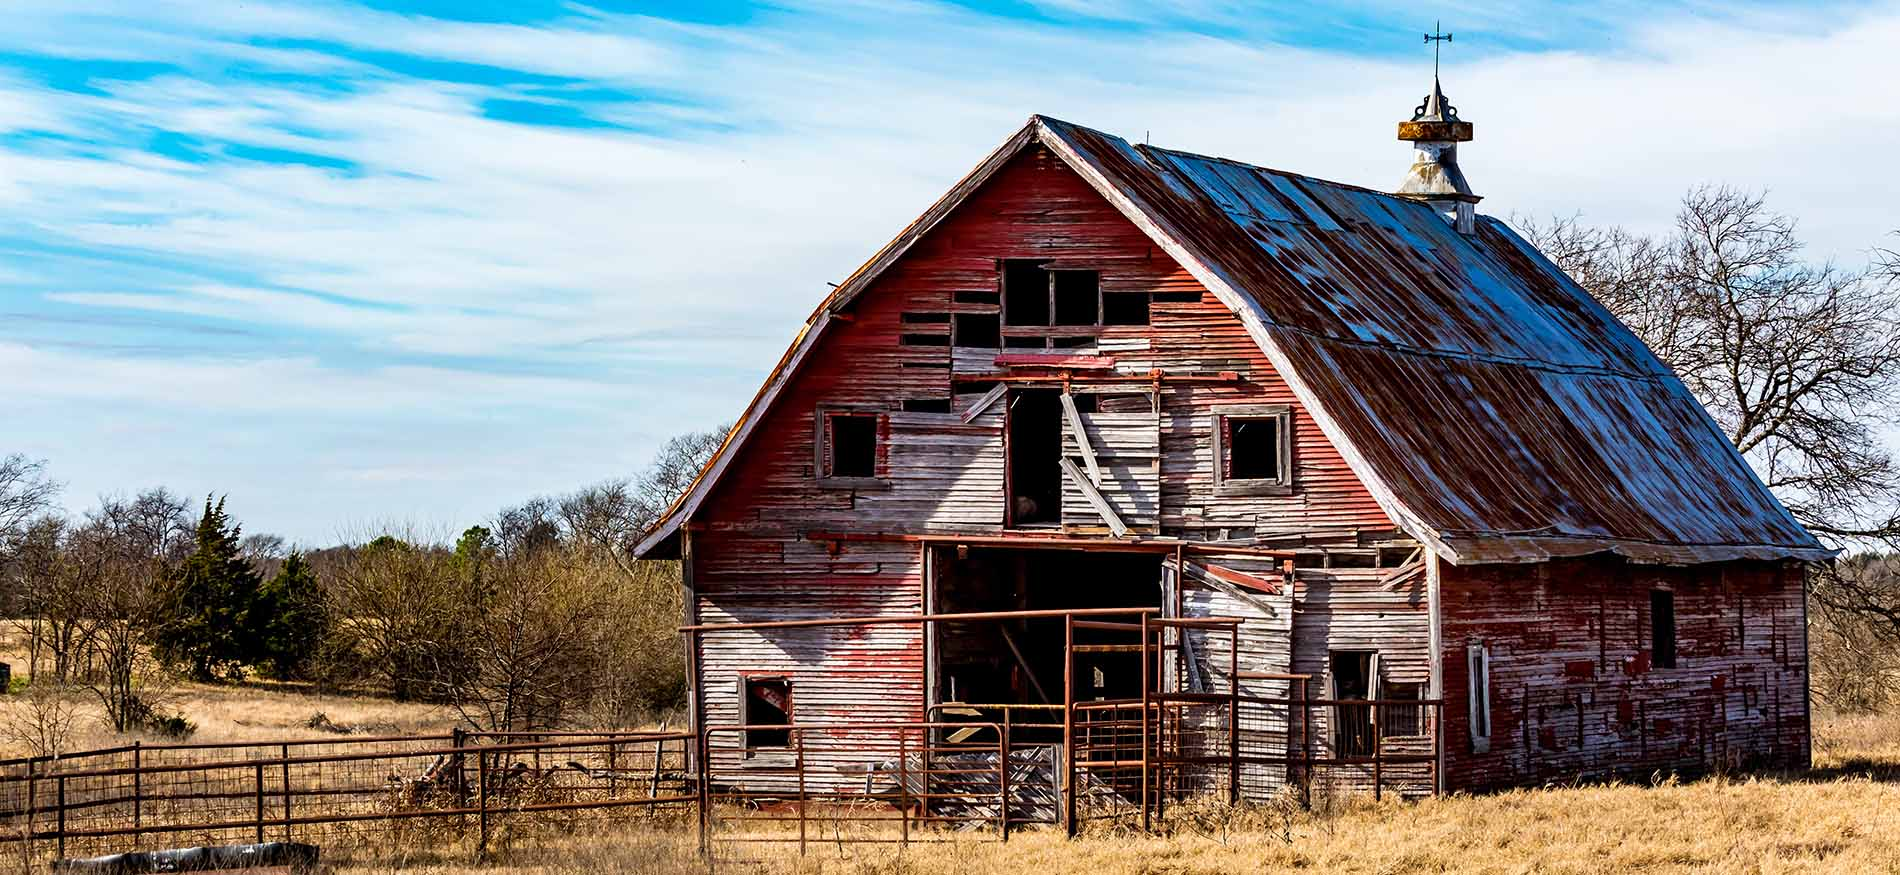 On Collapsing Dairy Barns, by Will Weaver